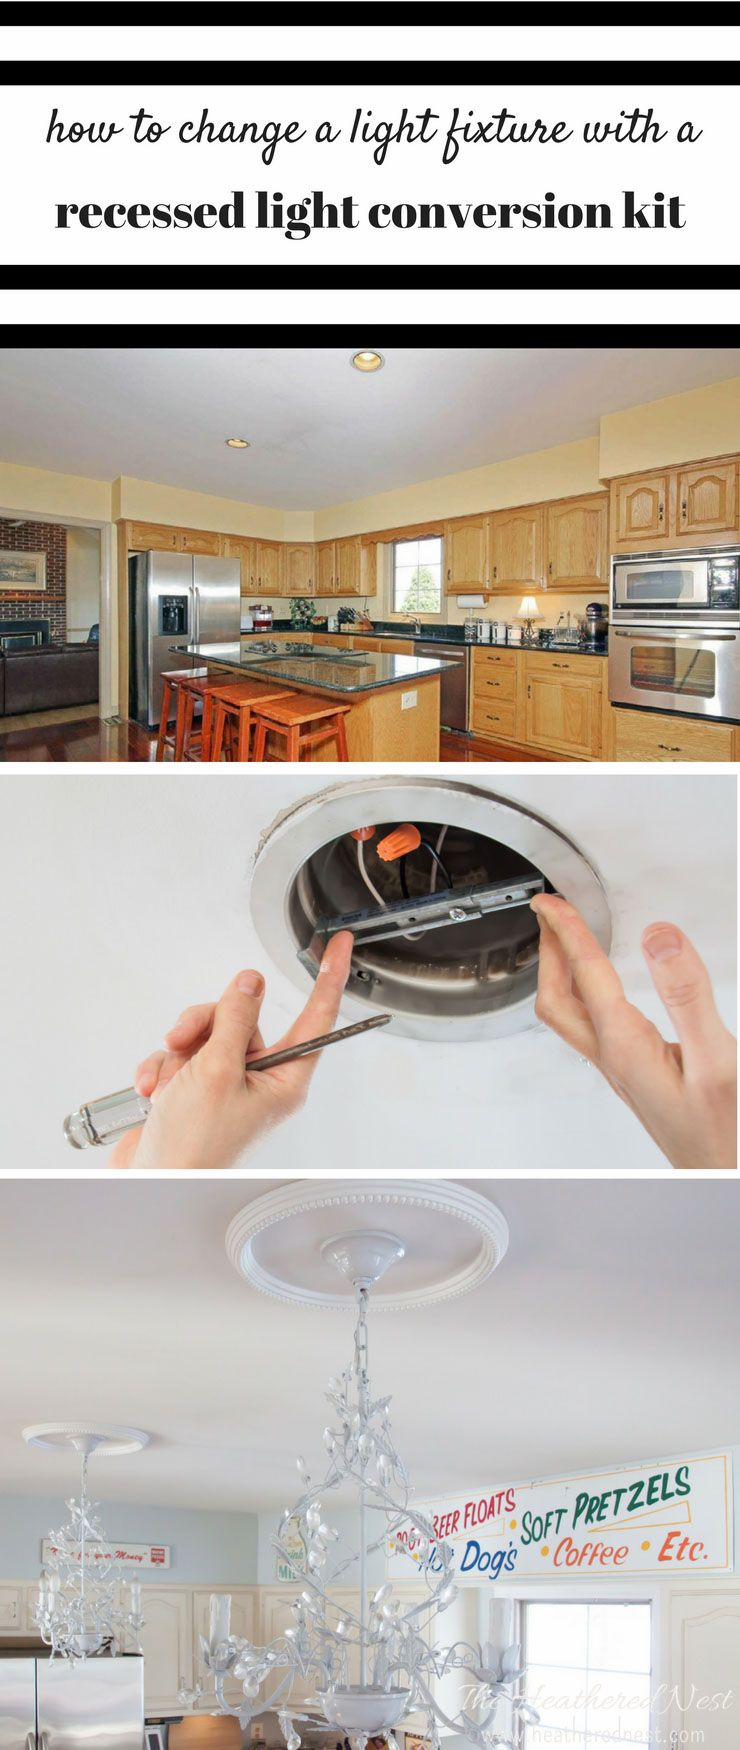 How to change a light fixture using a recessed light conversion kit great tutorial for how to change a light fixturehow to change a recessed light to a chandelier or pendant light would be awesome in our kitchenmaster arubaitofo Choice Image